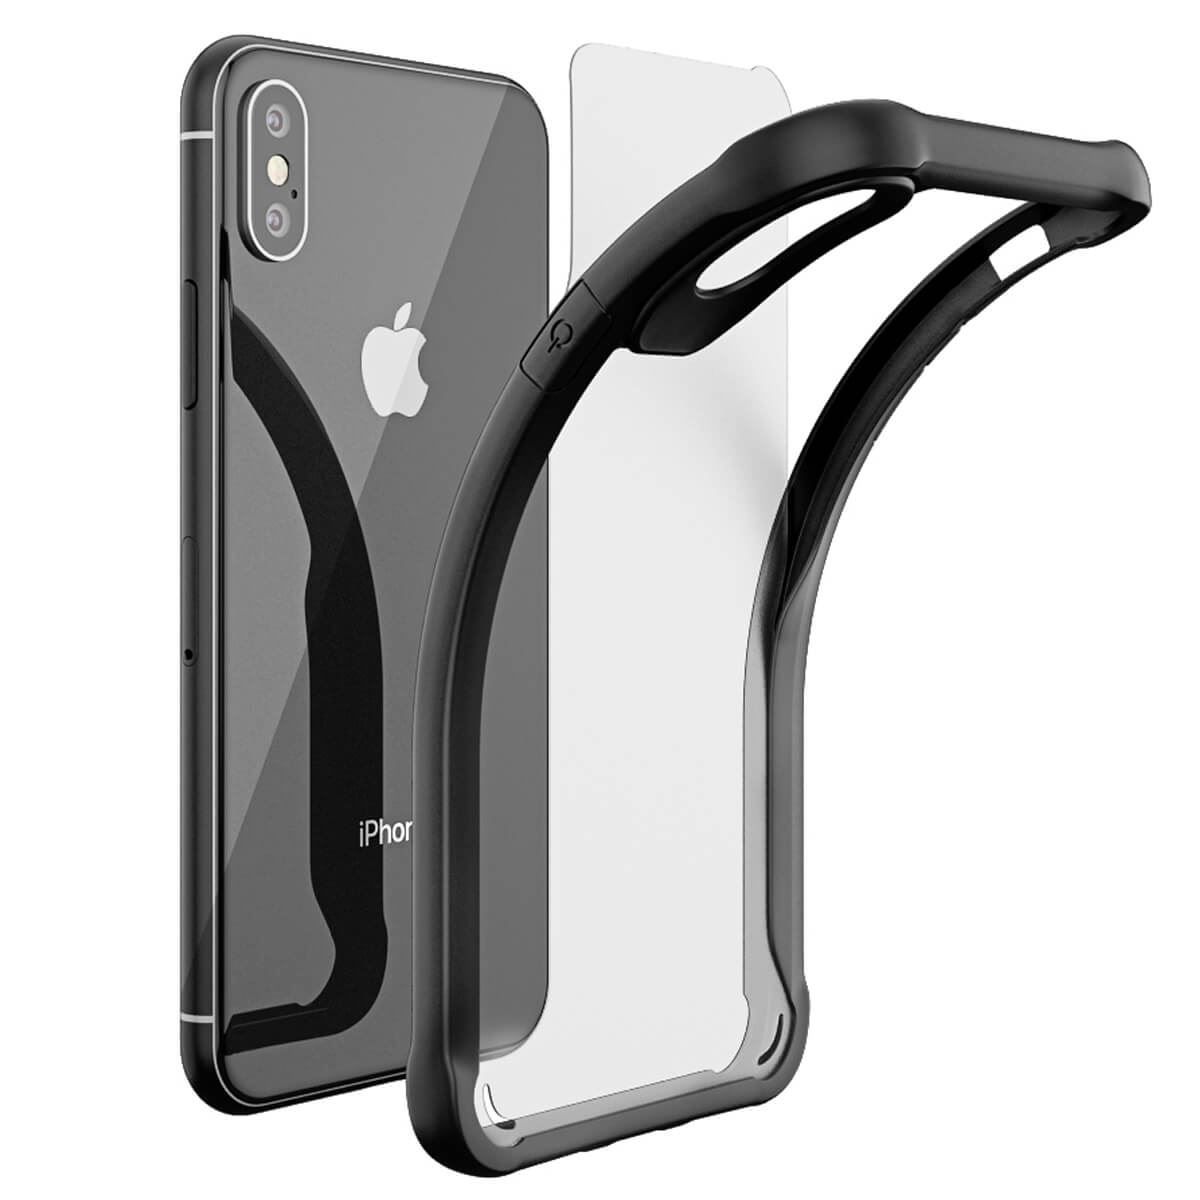 Thin-Shockproof-Case-For-Apple-iPhone-X-8-7-Plus-6s-Clear-Hard-Bumper-TPU-Cover thumbnail 4